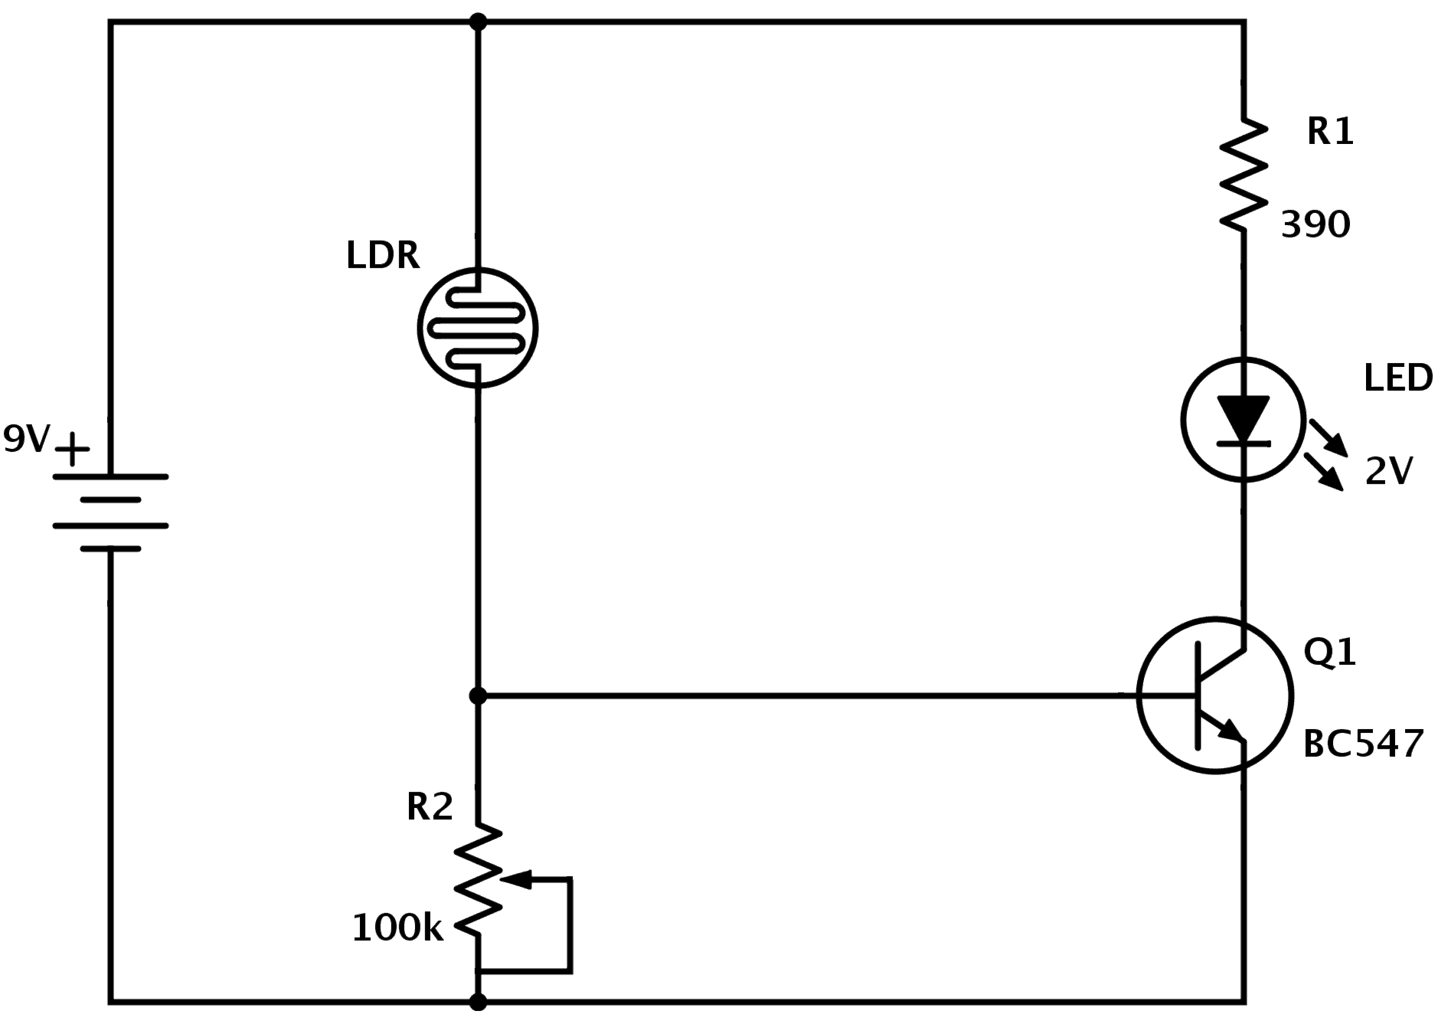 LDR circuit improved circuit diagram how to read and understand any schematic draw wiring diagrams at nearapp.co